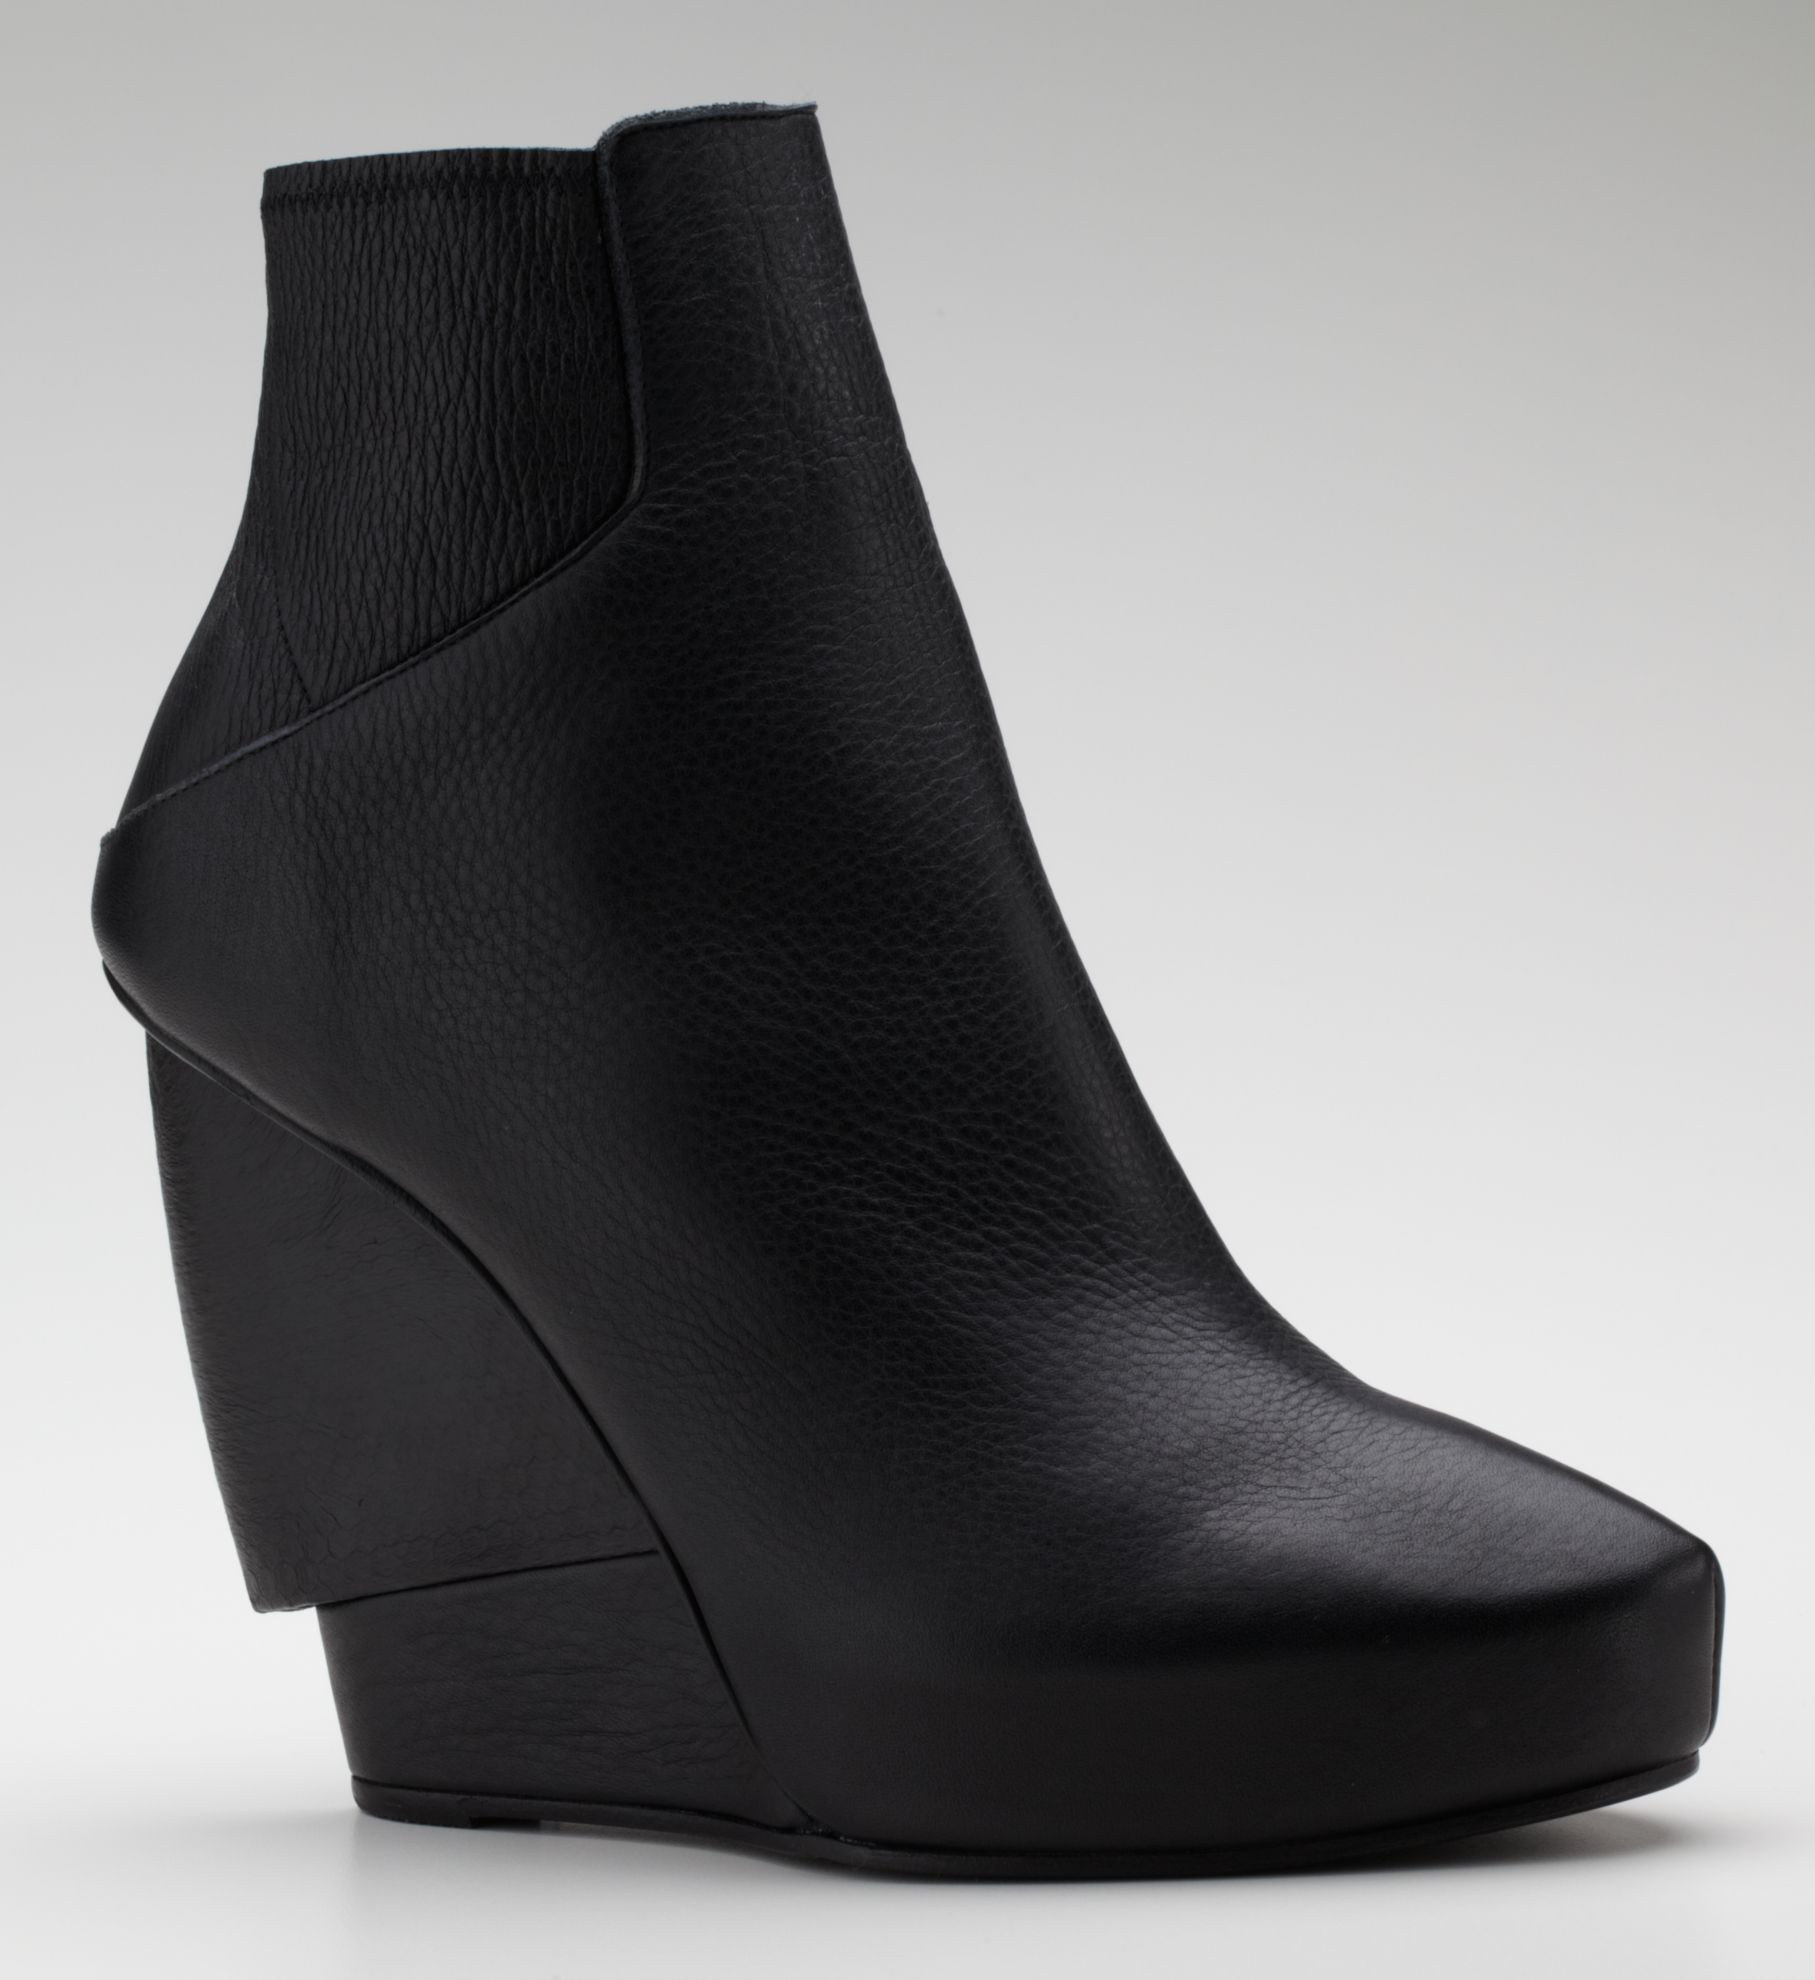 HYDRA WEDGE BOOTIE